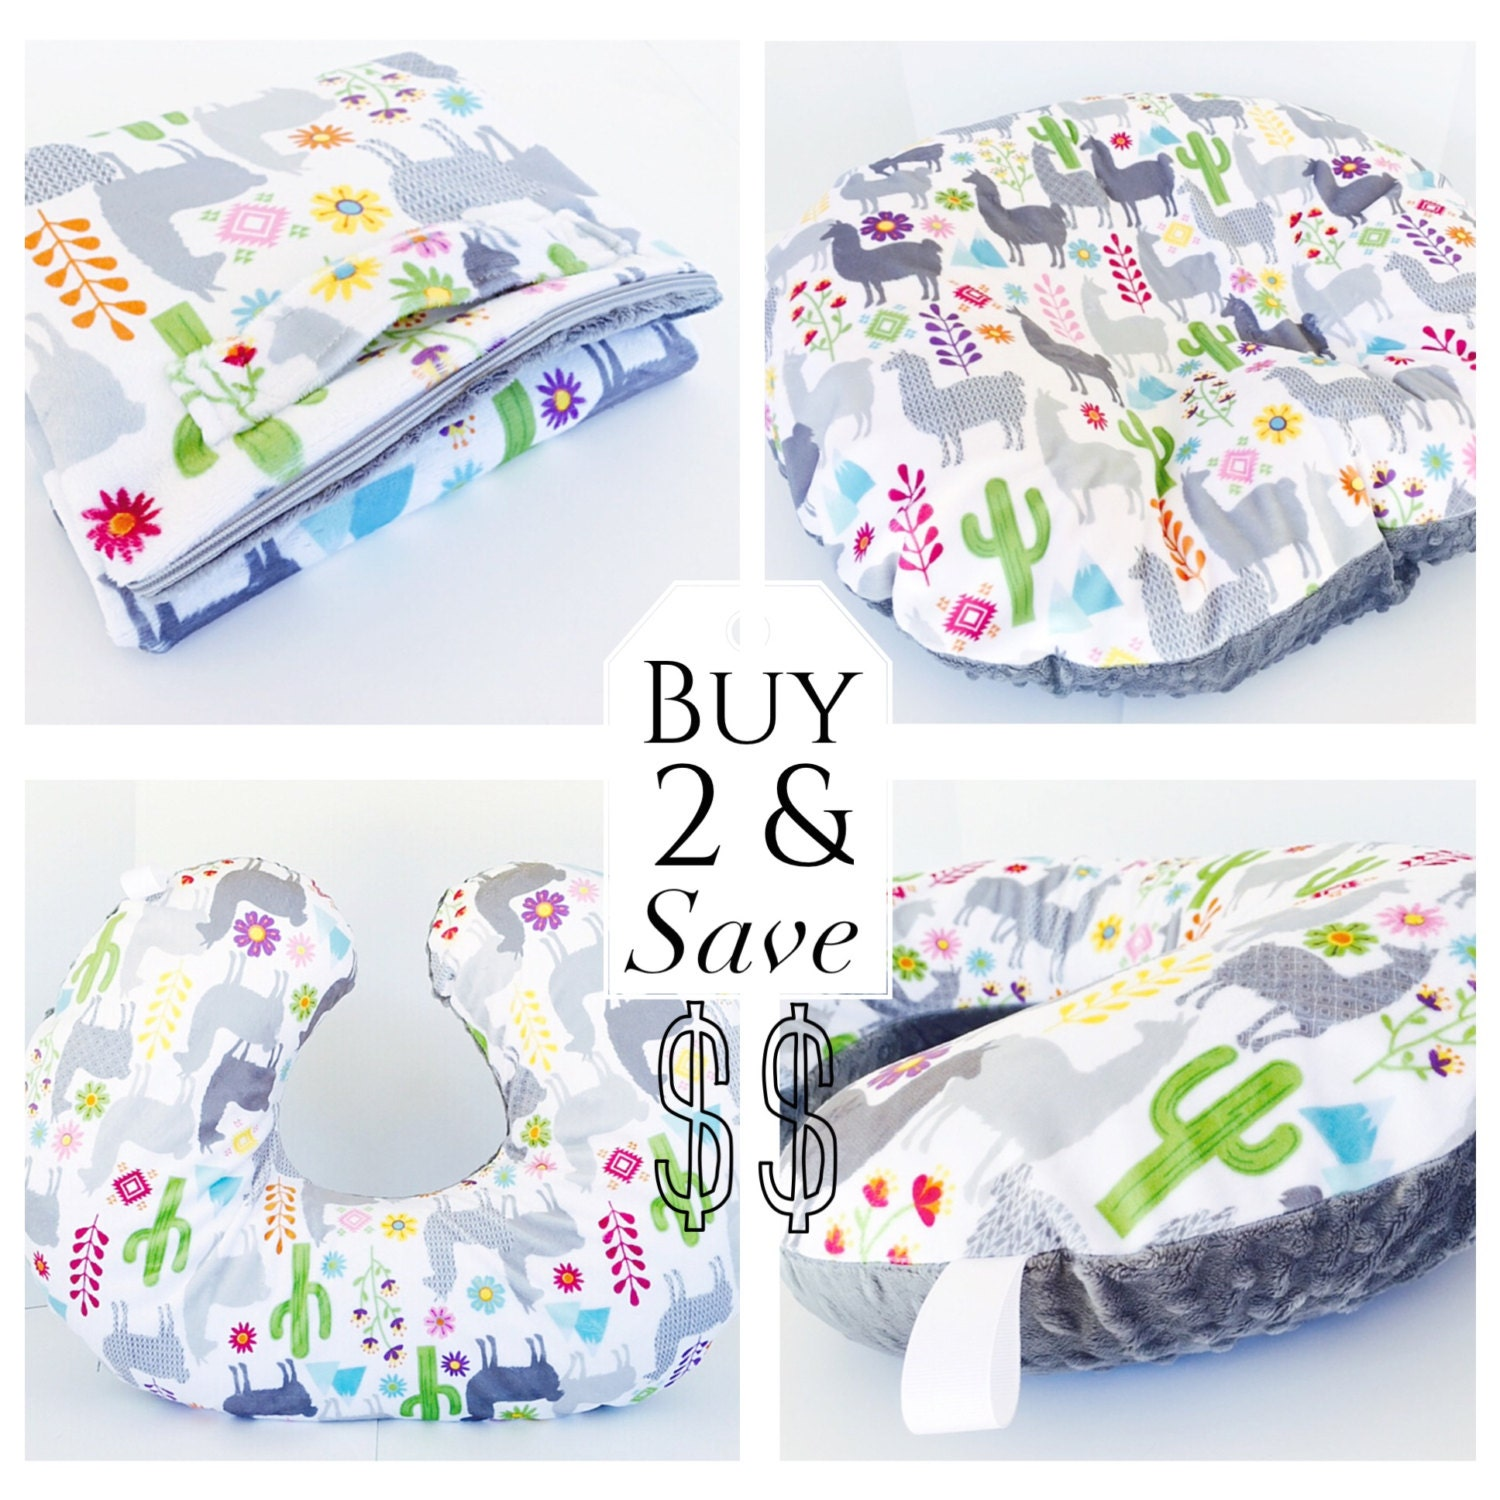 Boppy Slipcovers Set Zipper Closure Llama Minky Print With